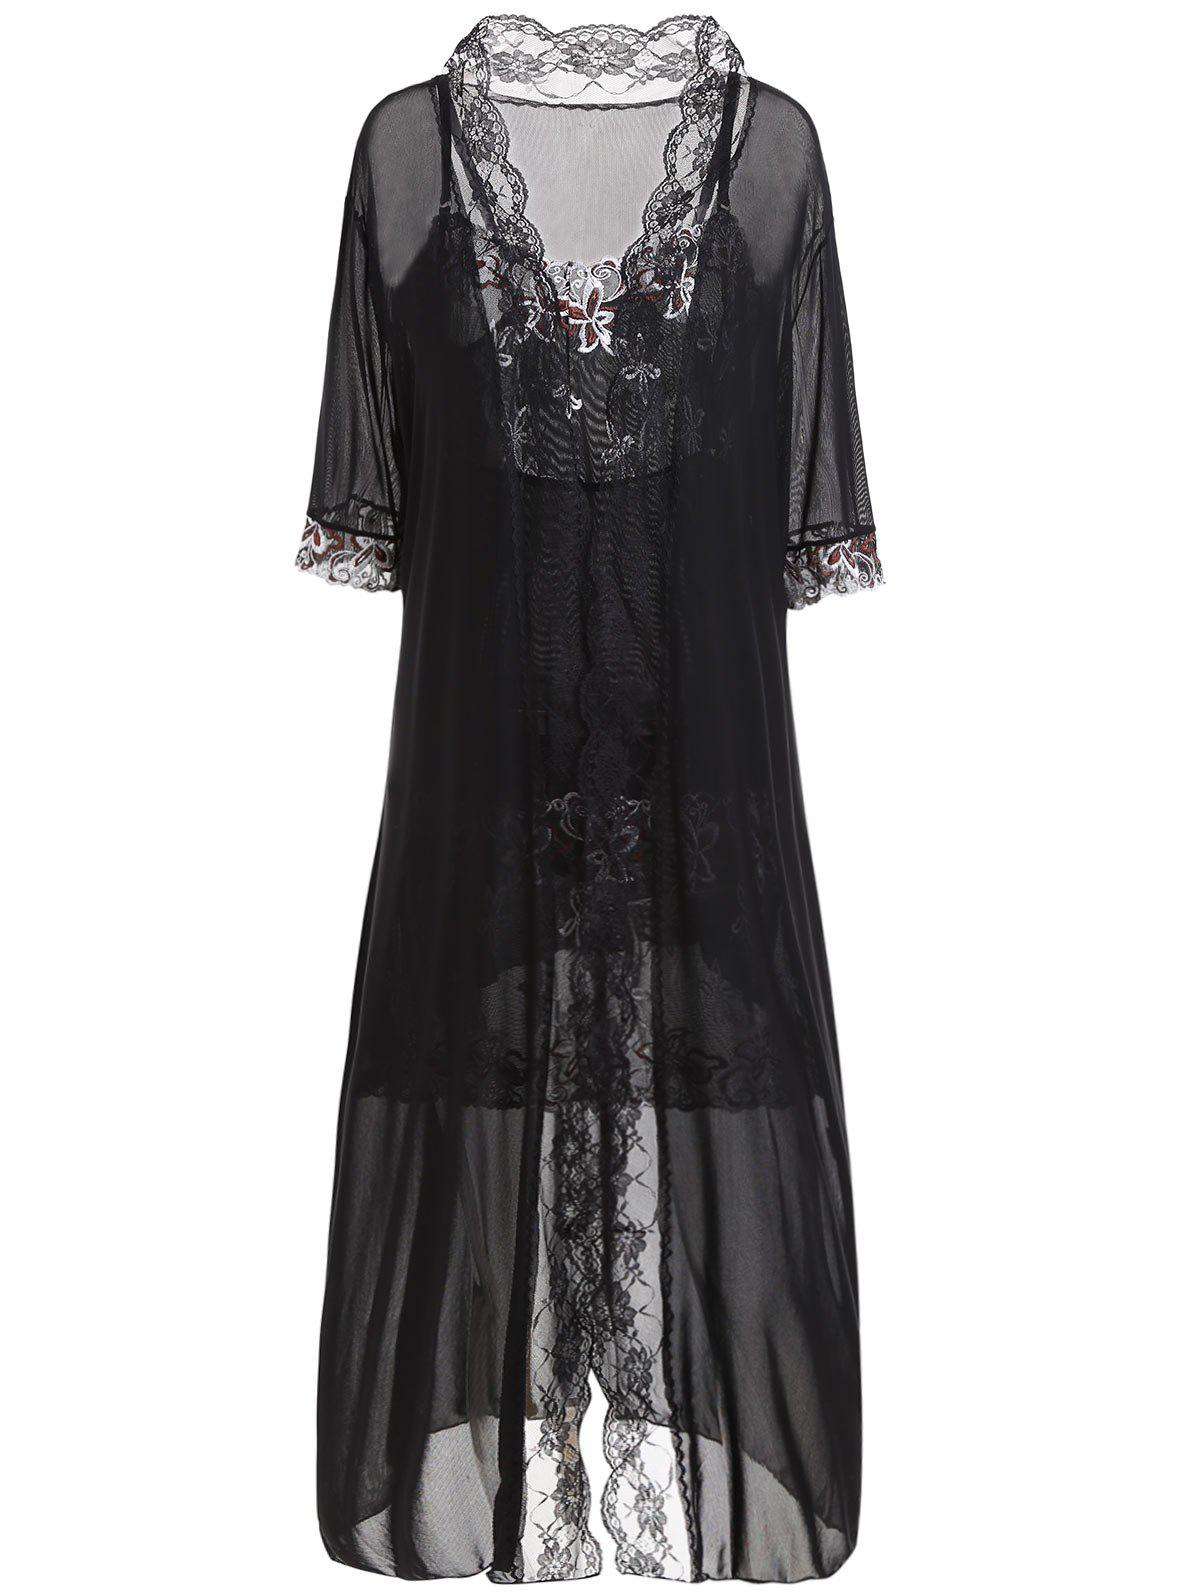 Plus Size Embroidery Slip Dress with RobeWOMEN<br><br>Size: ONE SIZE; Color: BLACK; Material: Nylon,Spandex; Pattern Type: Floral; Embellishment: Embroidery,Lace; Weight: 0.3500kg; Package Contents: 1 x Dress  1 x Robe  1 x T Back;